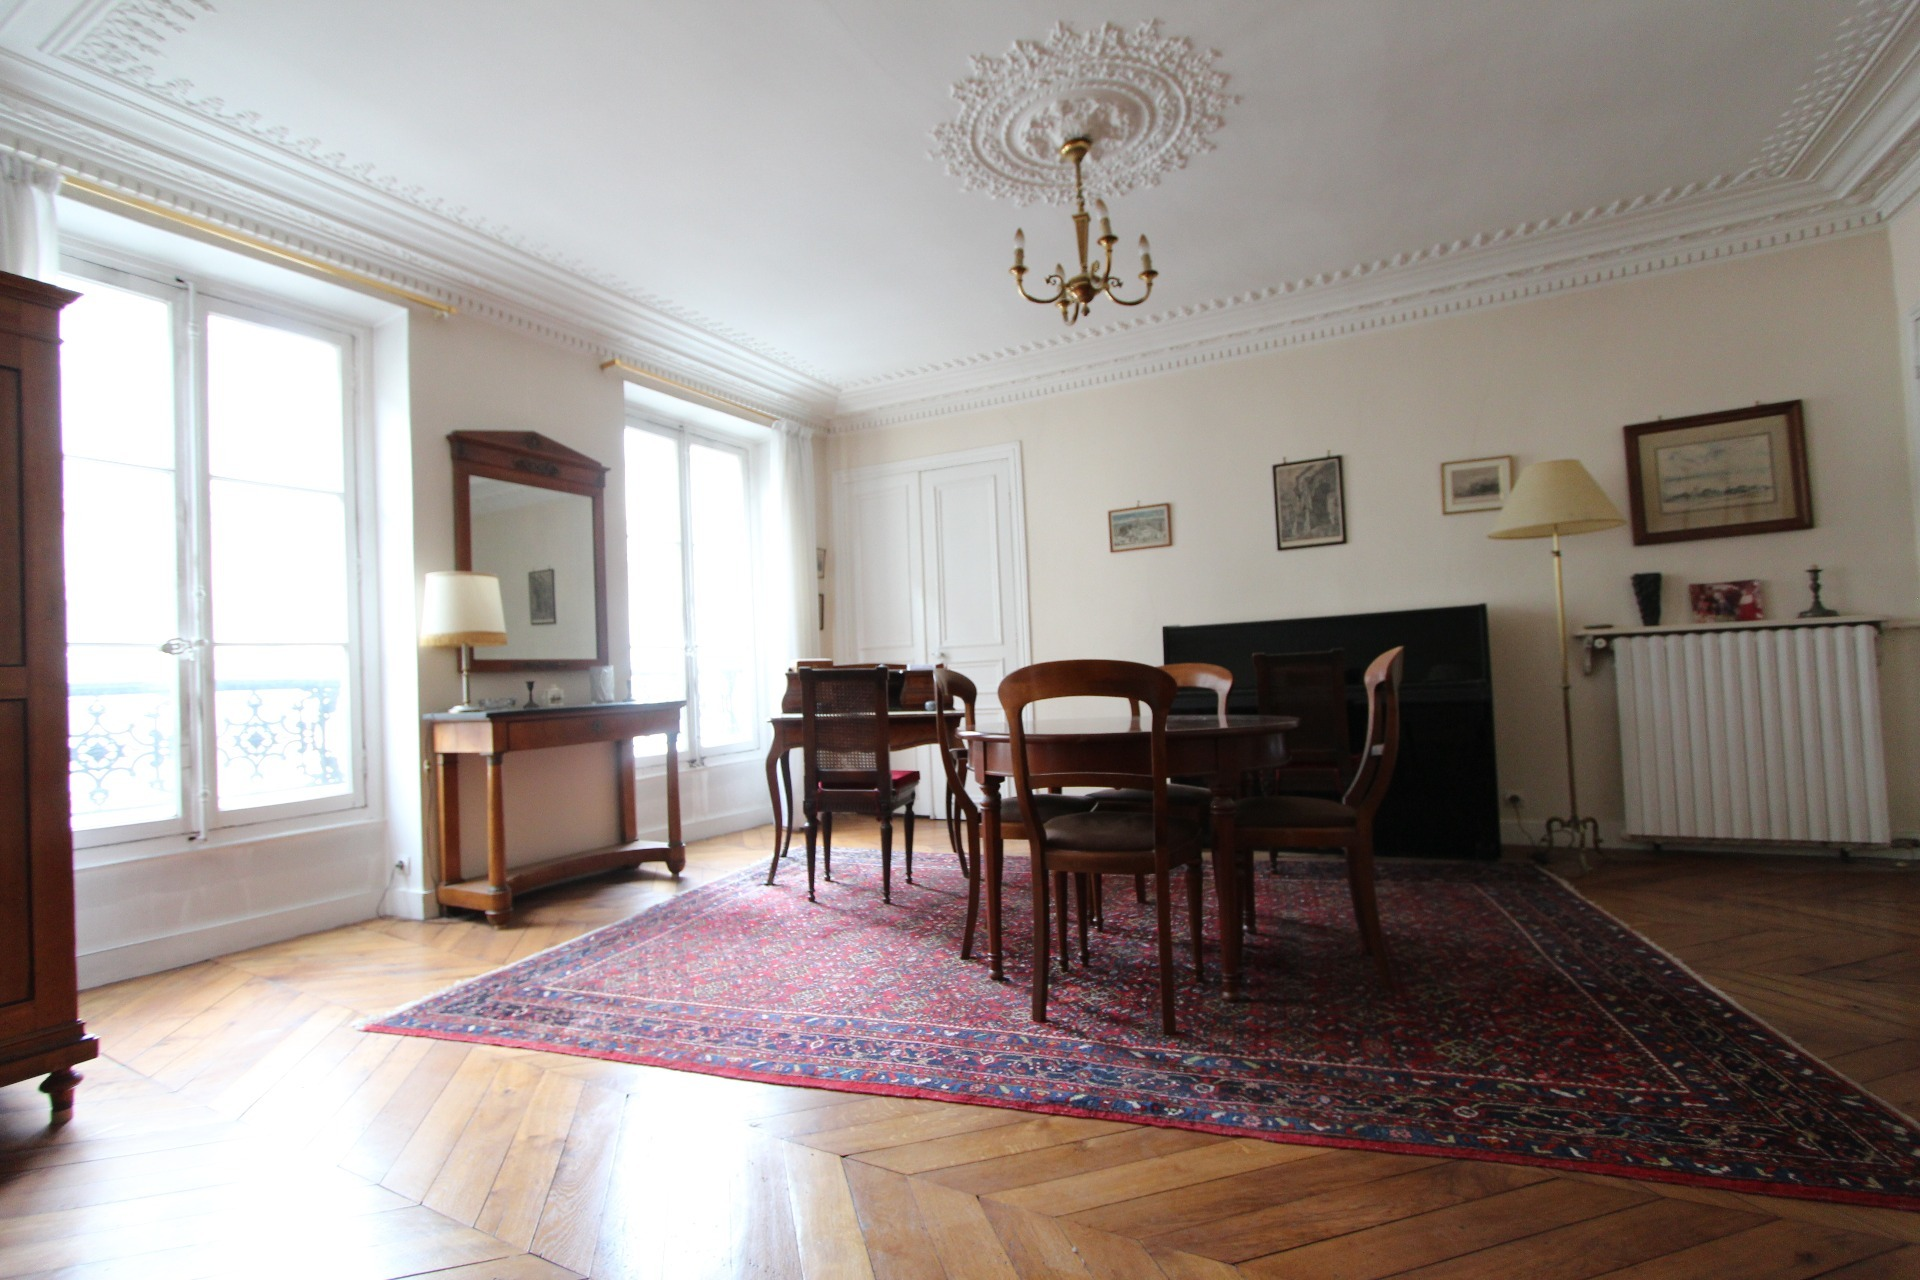 bel appartement de 83 m² à rénover paris 9ème saint-georges